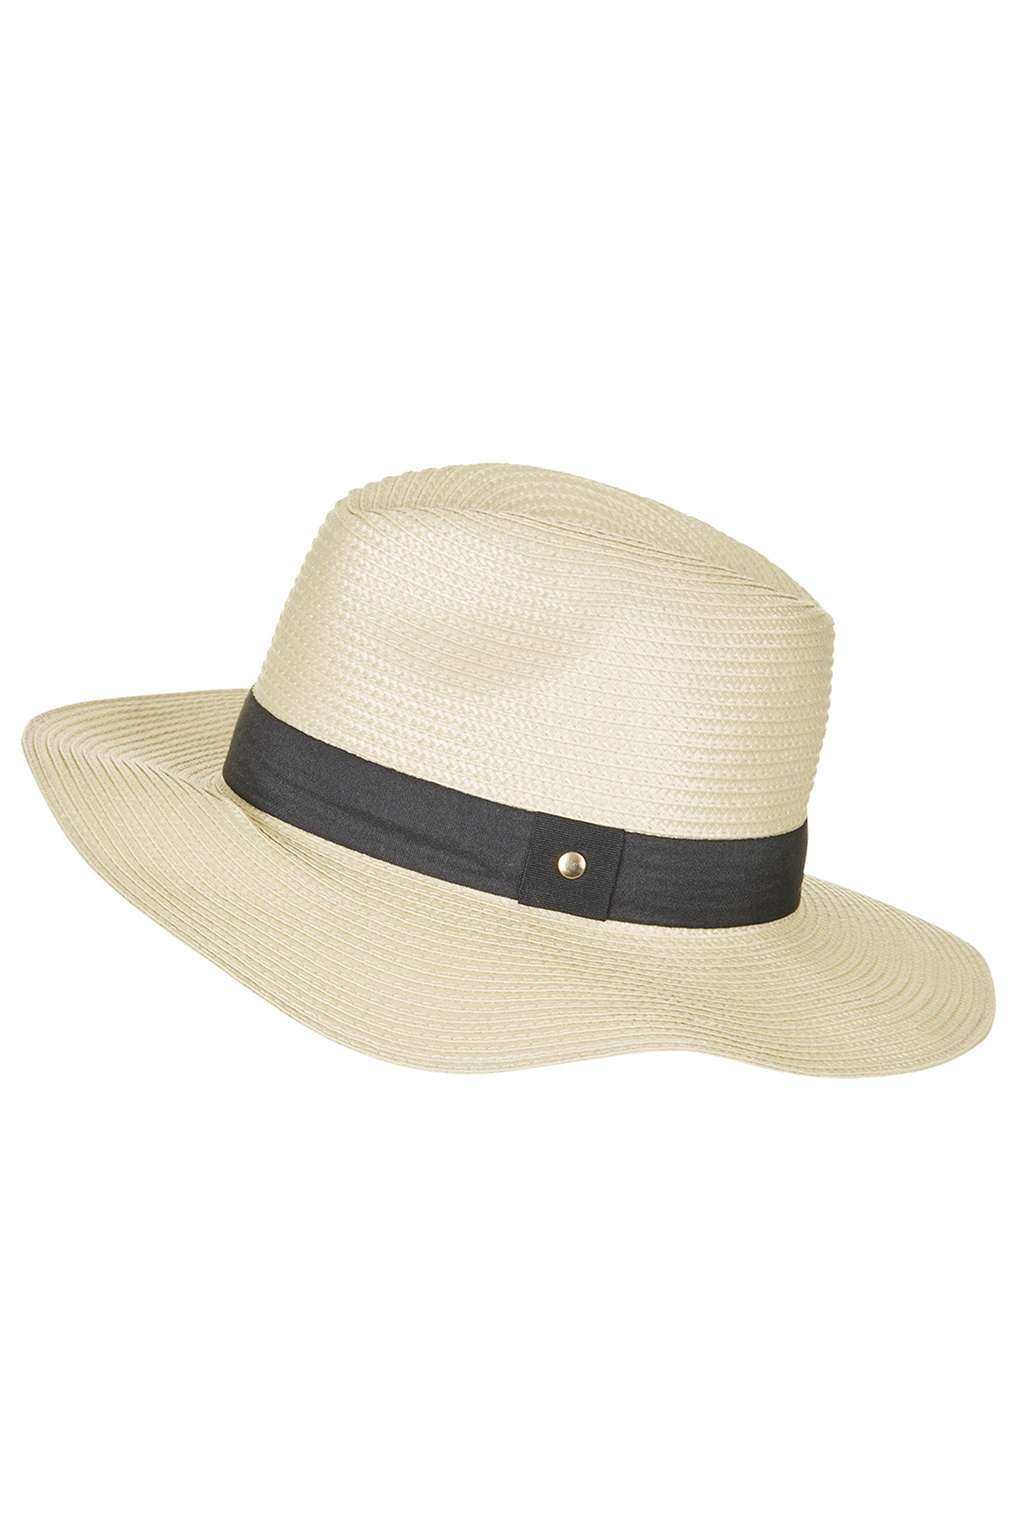 Topshop Natural Fedora